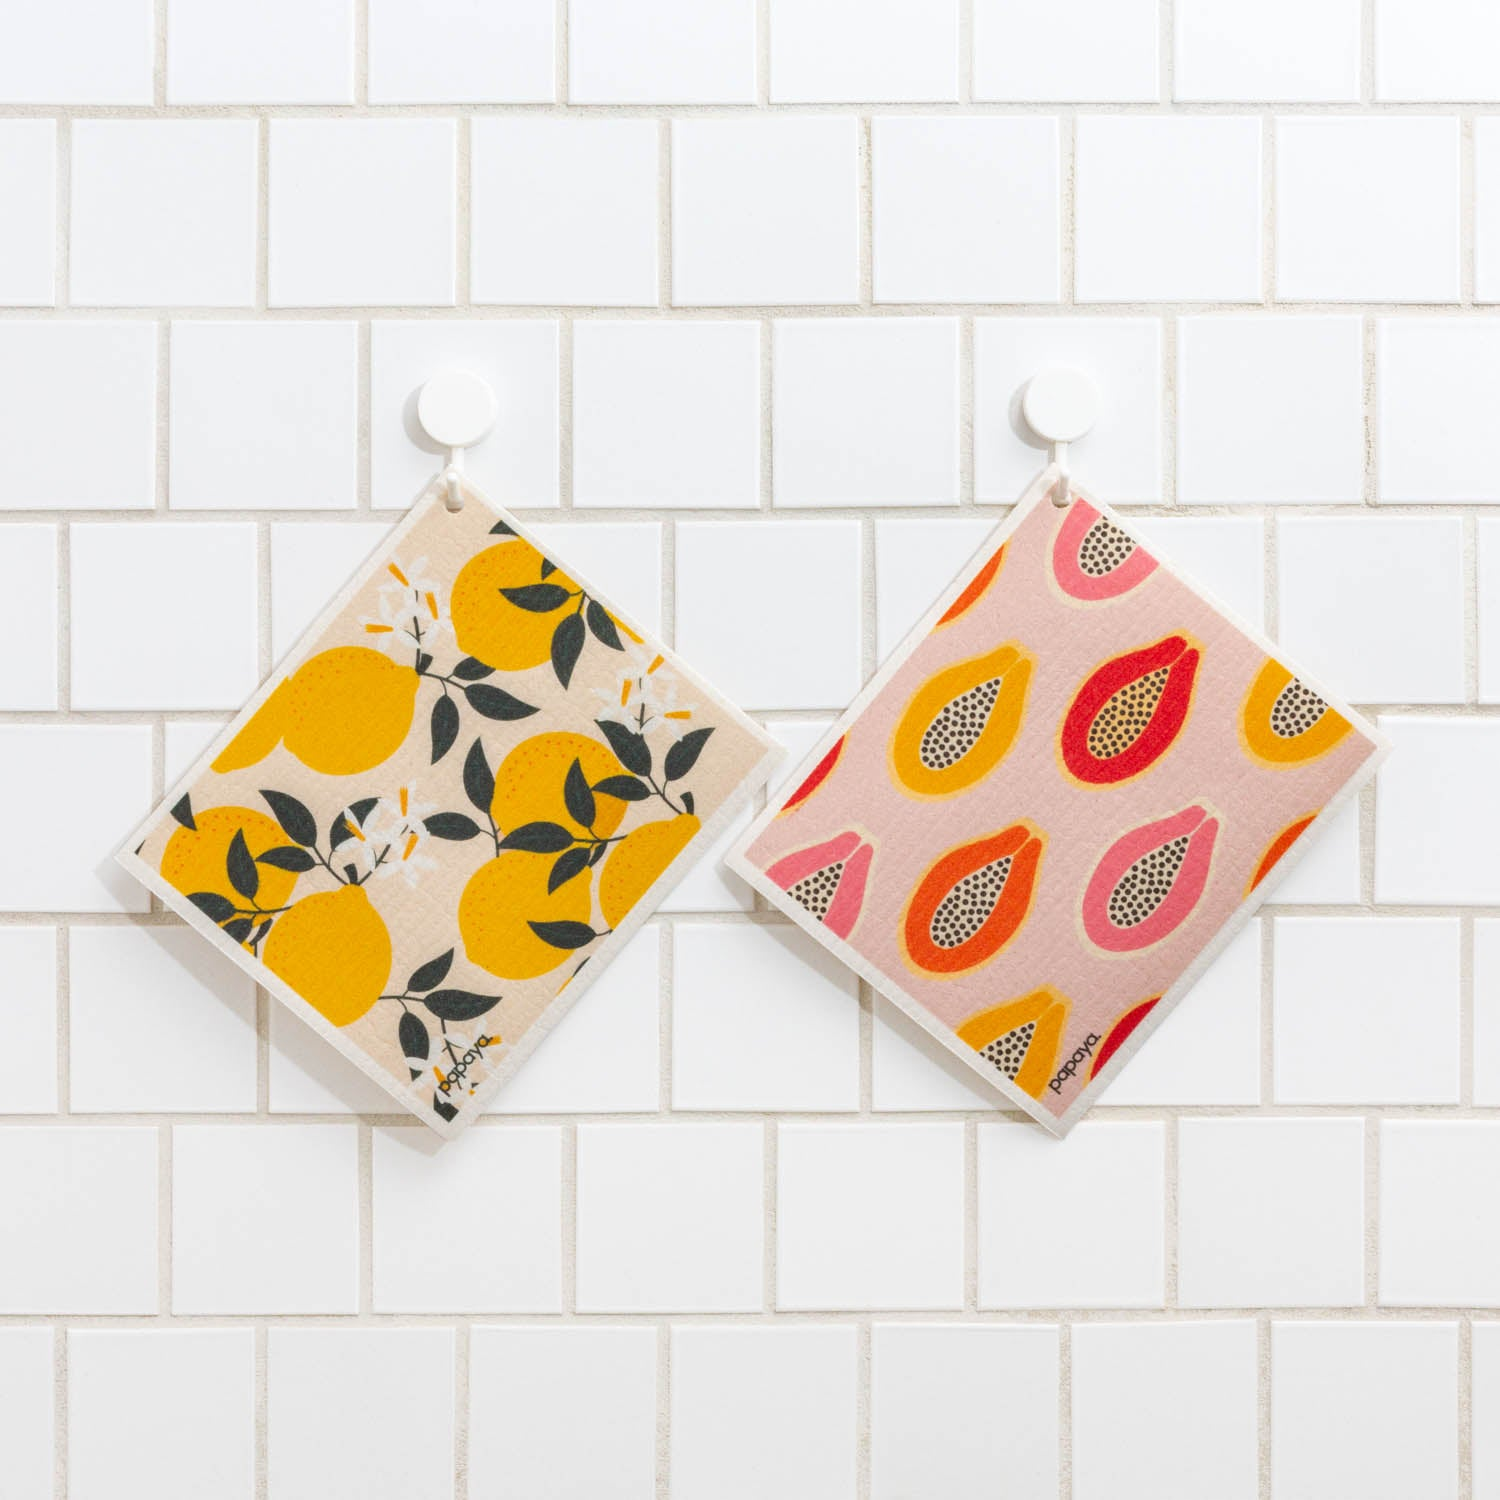 Two reusable paper towels hanging on white tile with cute and colorful lemons and papaya designs